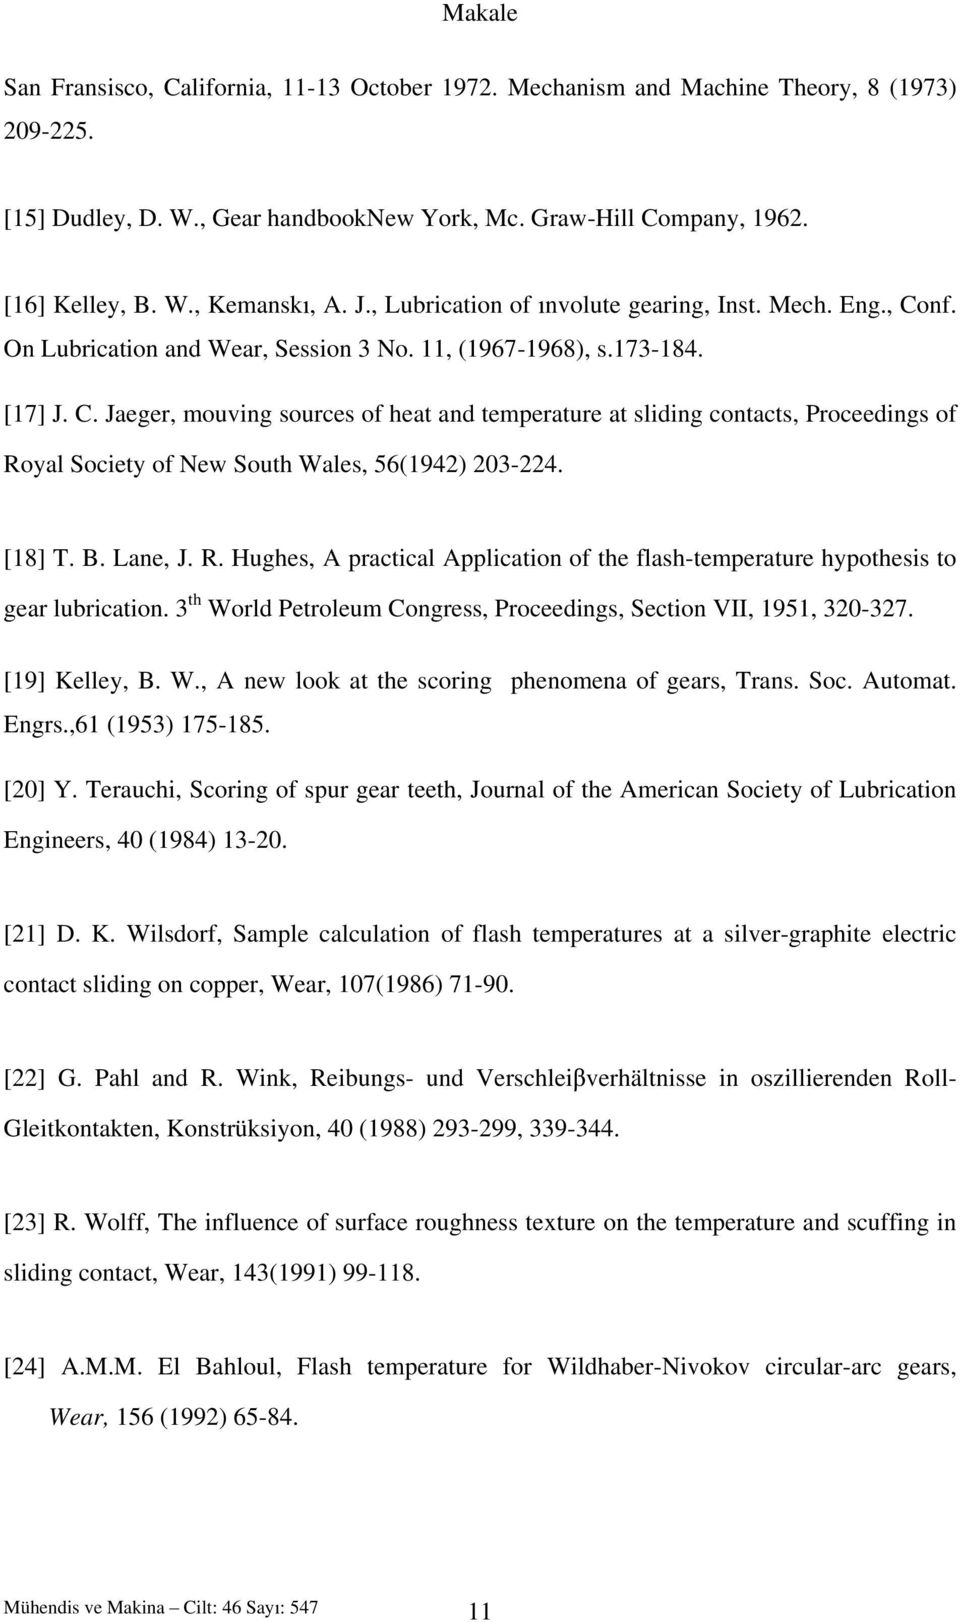 [18] T. B. Lane, J. R. Hughes, A practical Application of the flash-temperature hypothesis to gear lubrication. 3 th World Petroleum Congress, Proceedings, Section VII, 1951, 320-327. [19] Kelley, B.